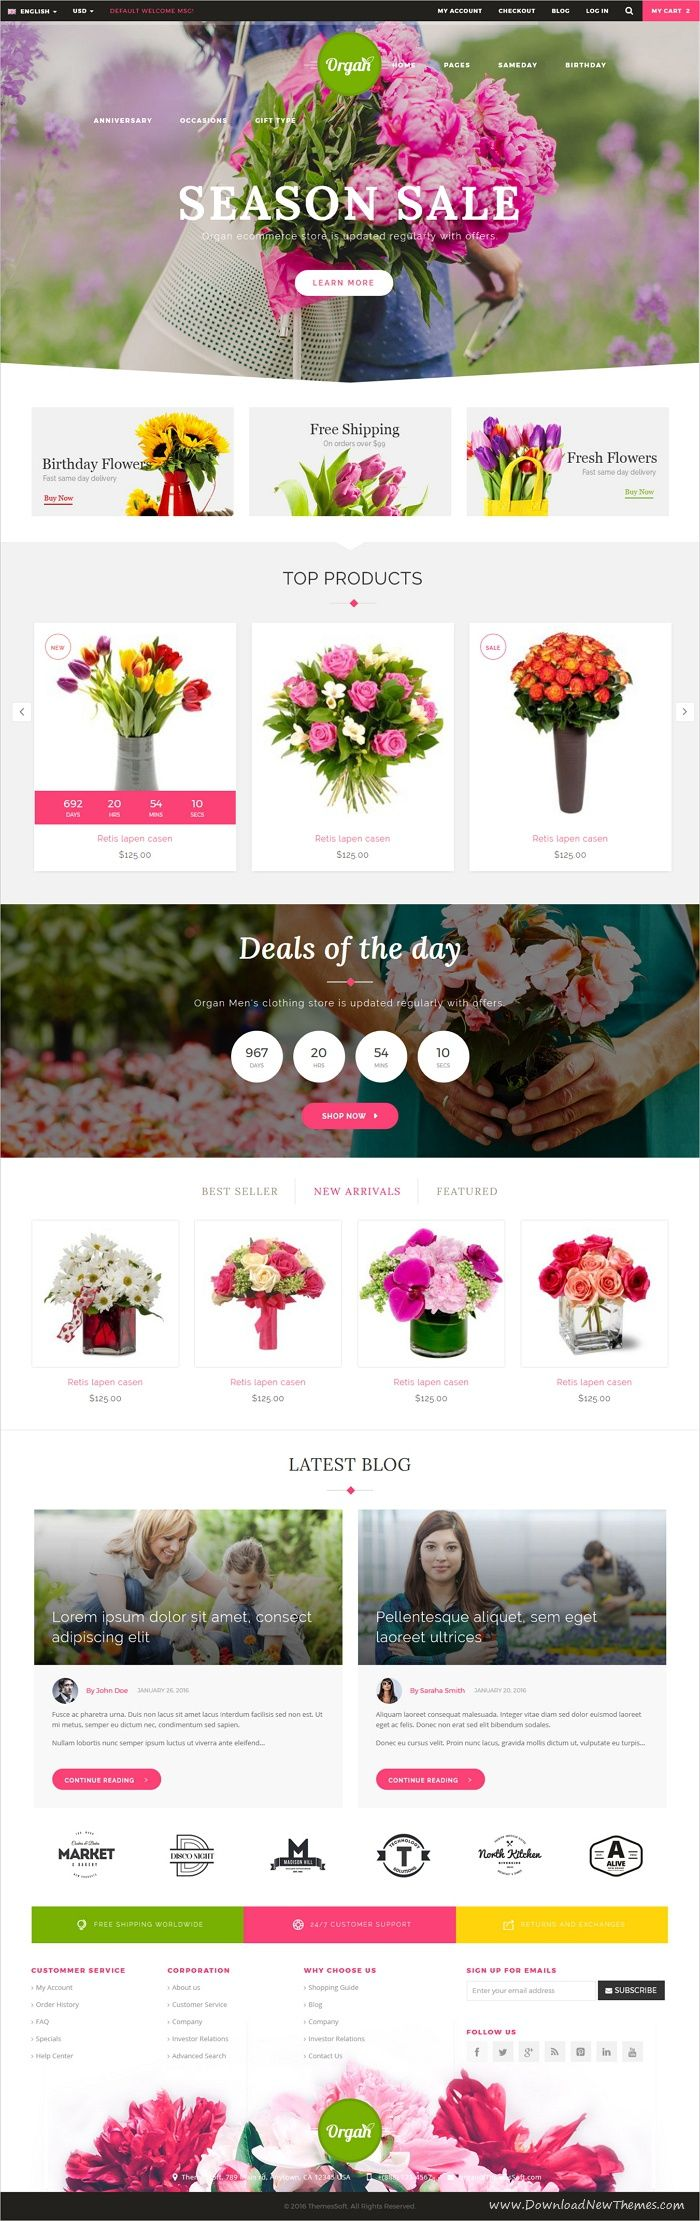 Organ is a wonderful 2in1 responsive HTML #bootstrap template for #flower #florist #shop organic store or eCommerce website download now➩ https://themeforest.net/item/organ-ecommerce-multipurpose-html5-template/19455236?ref=Datasata